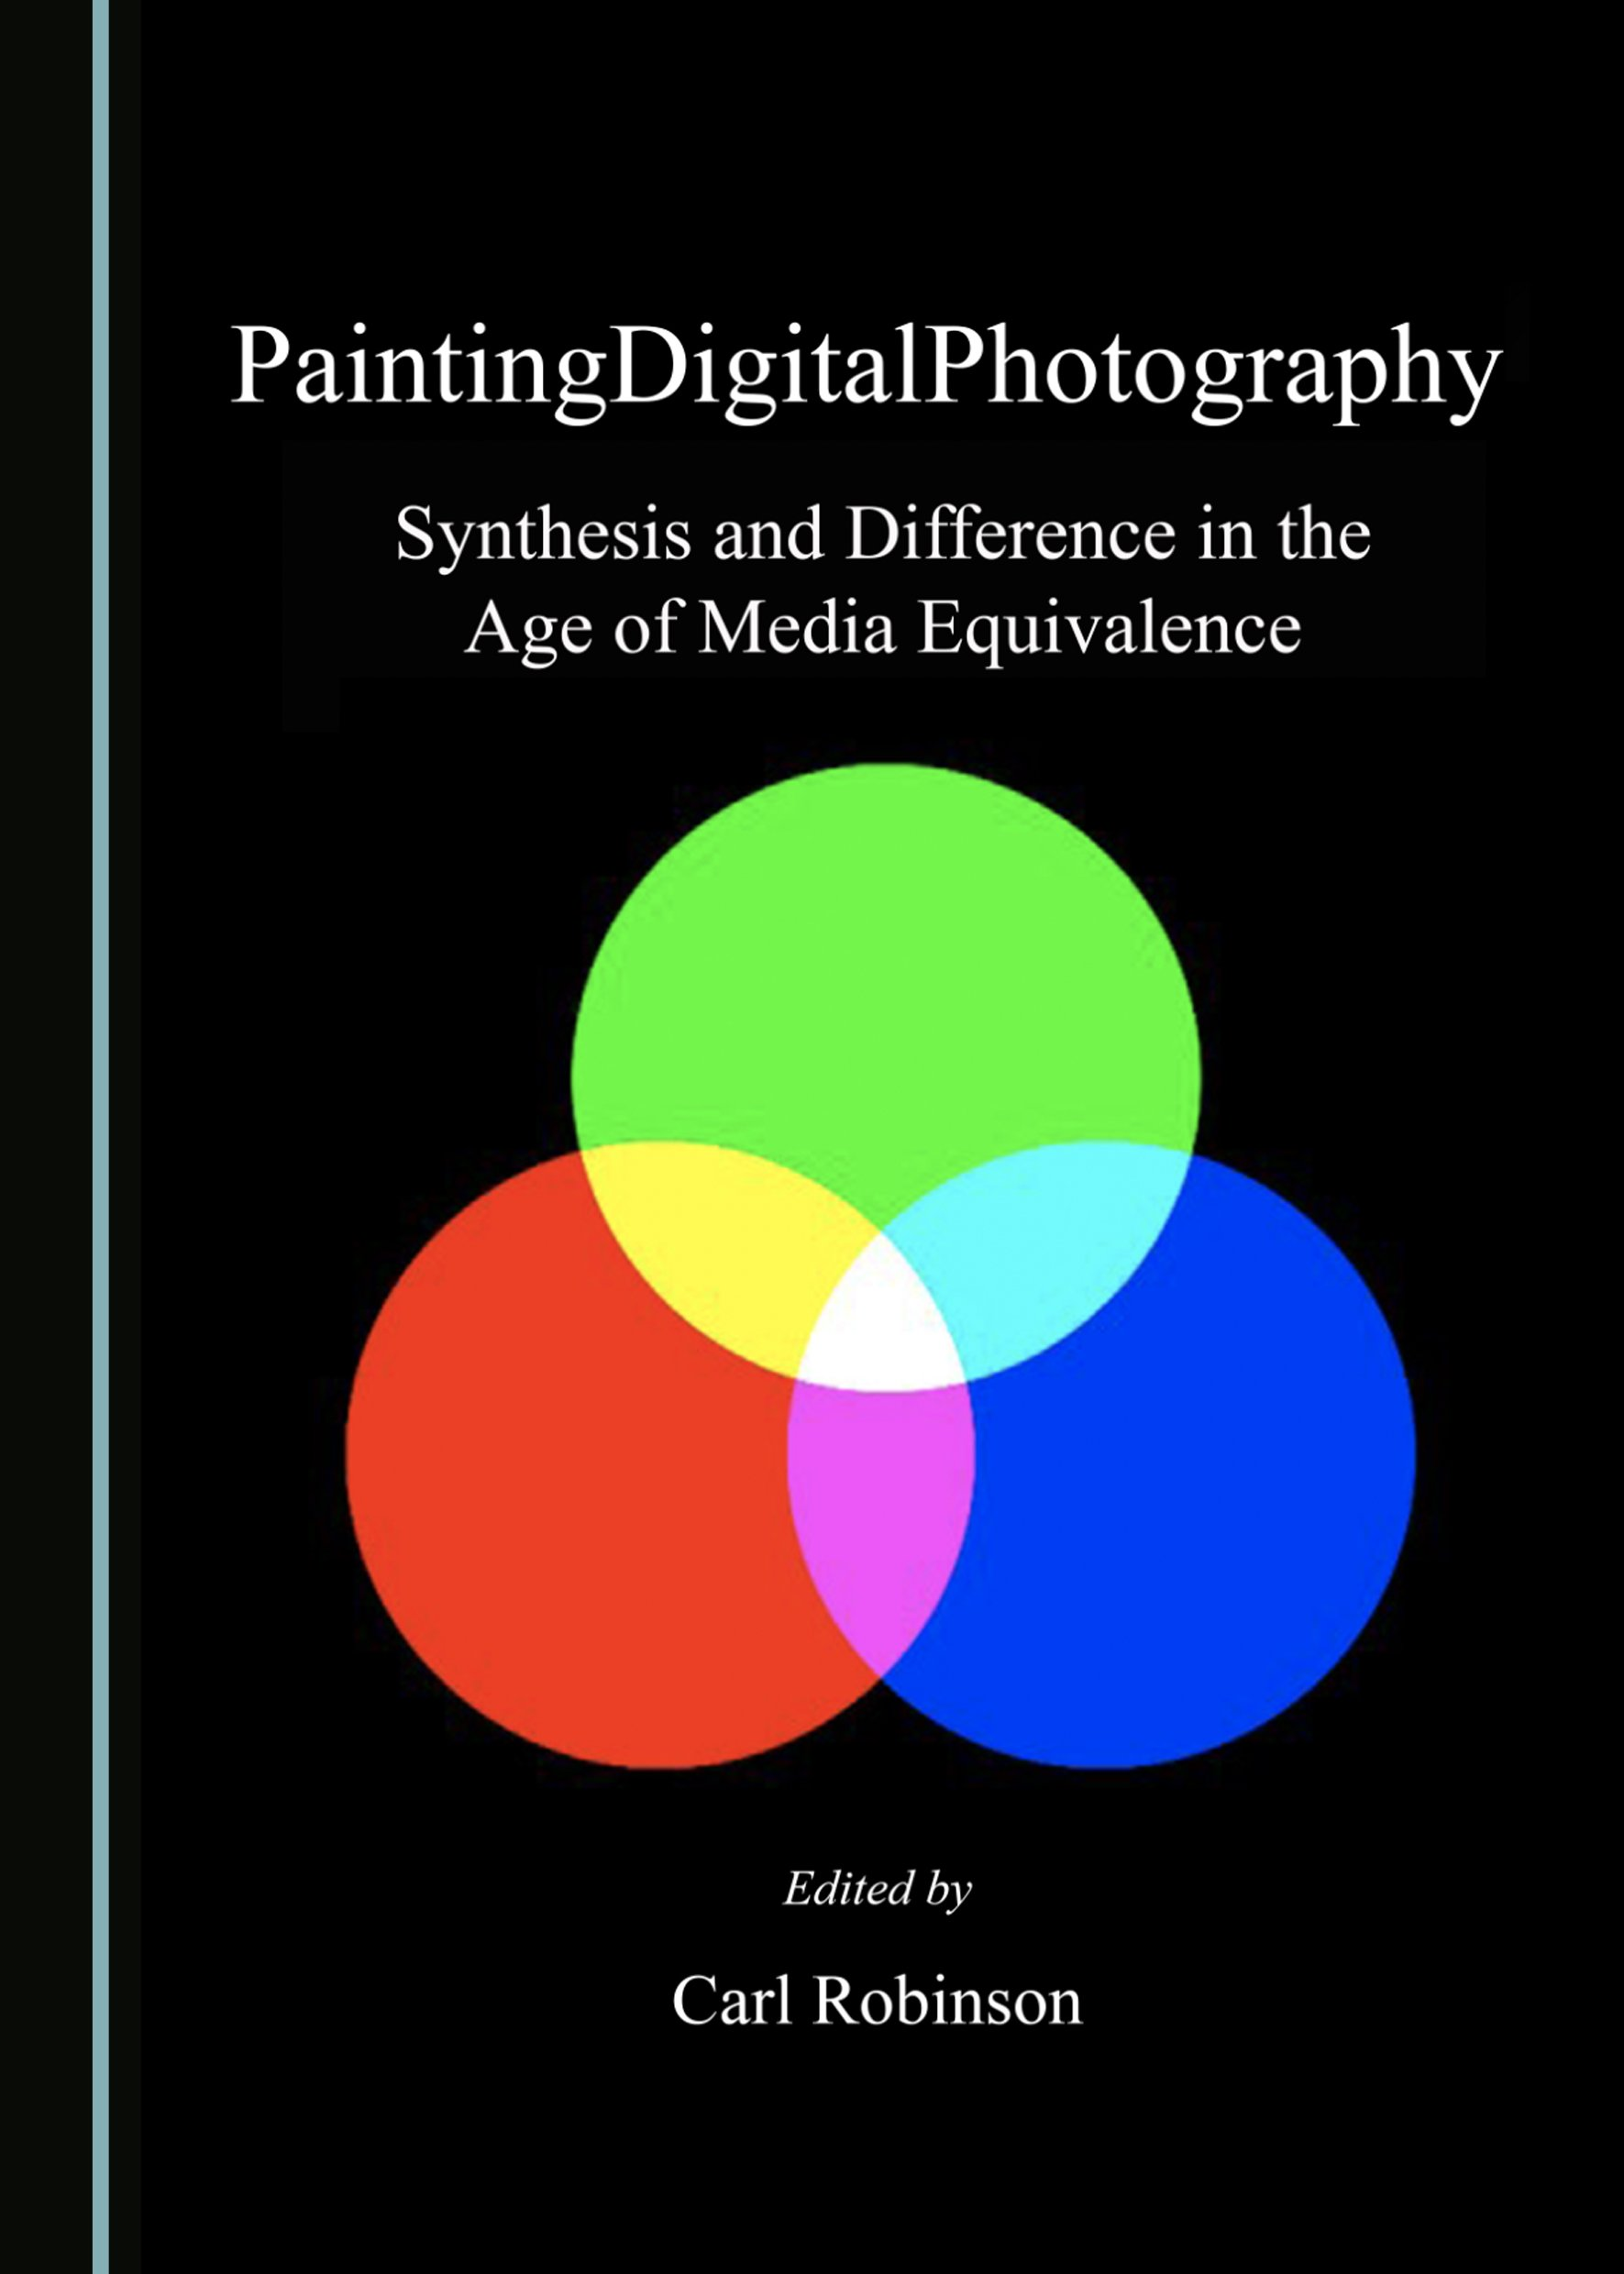 PaintingDigitalPhotography: Synthesis and Difference in the Age of Media Equivalence